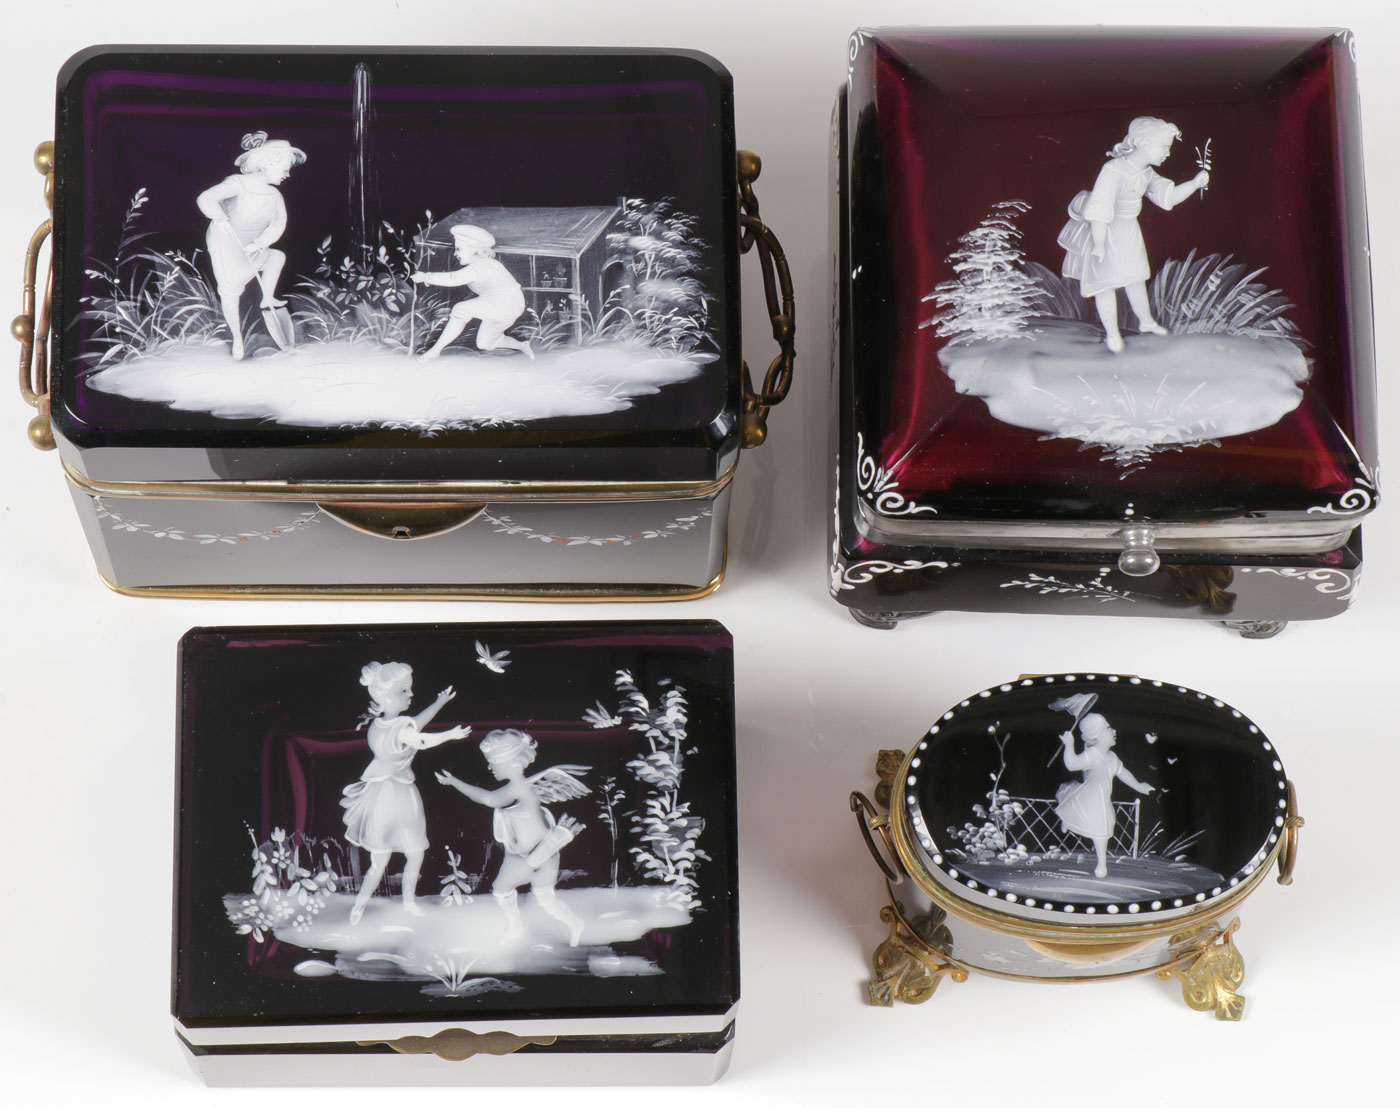 FOUR MARY GREGORY AMETHYST BOXES, C. 1880